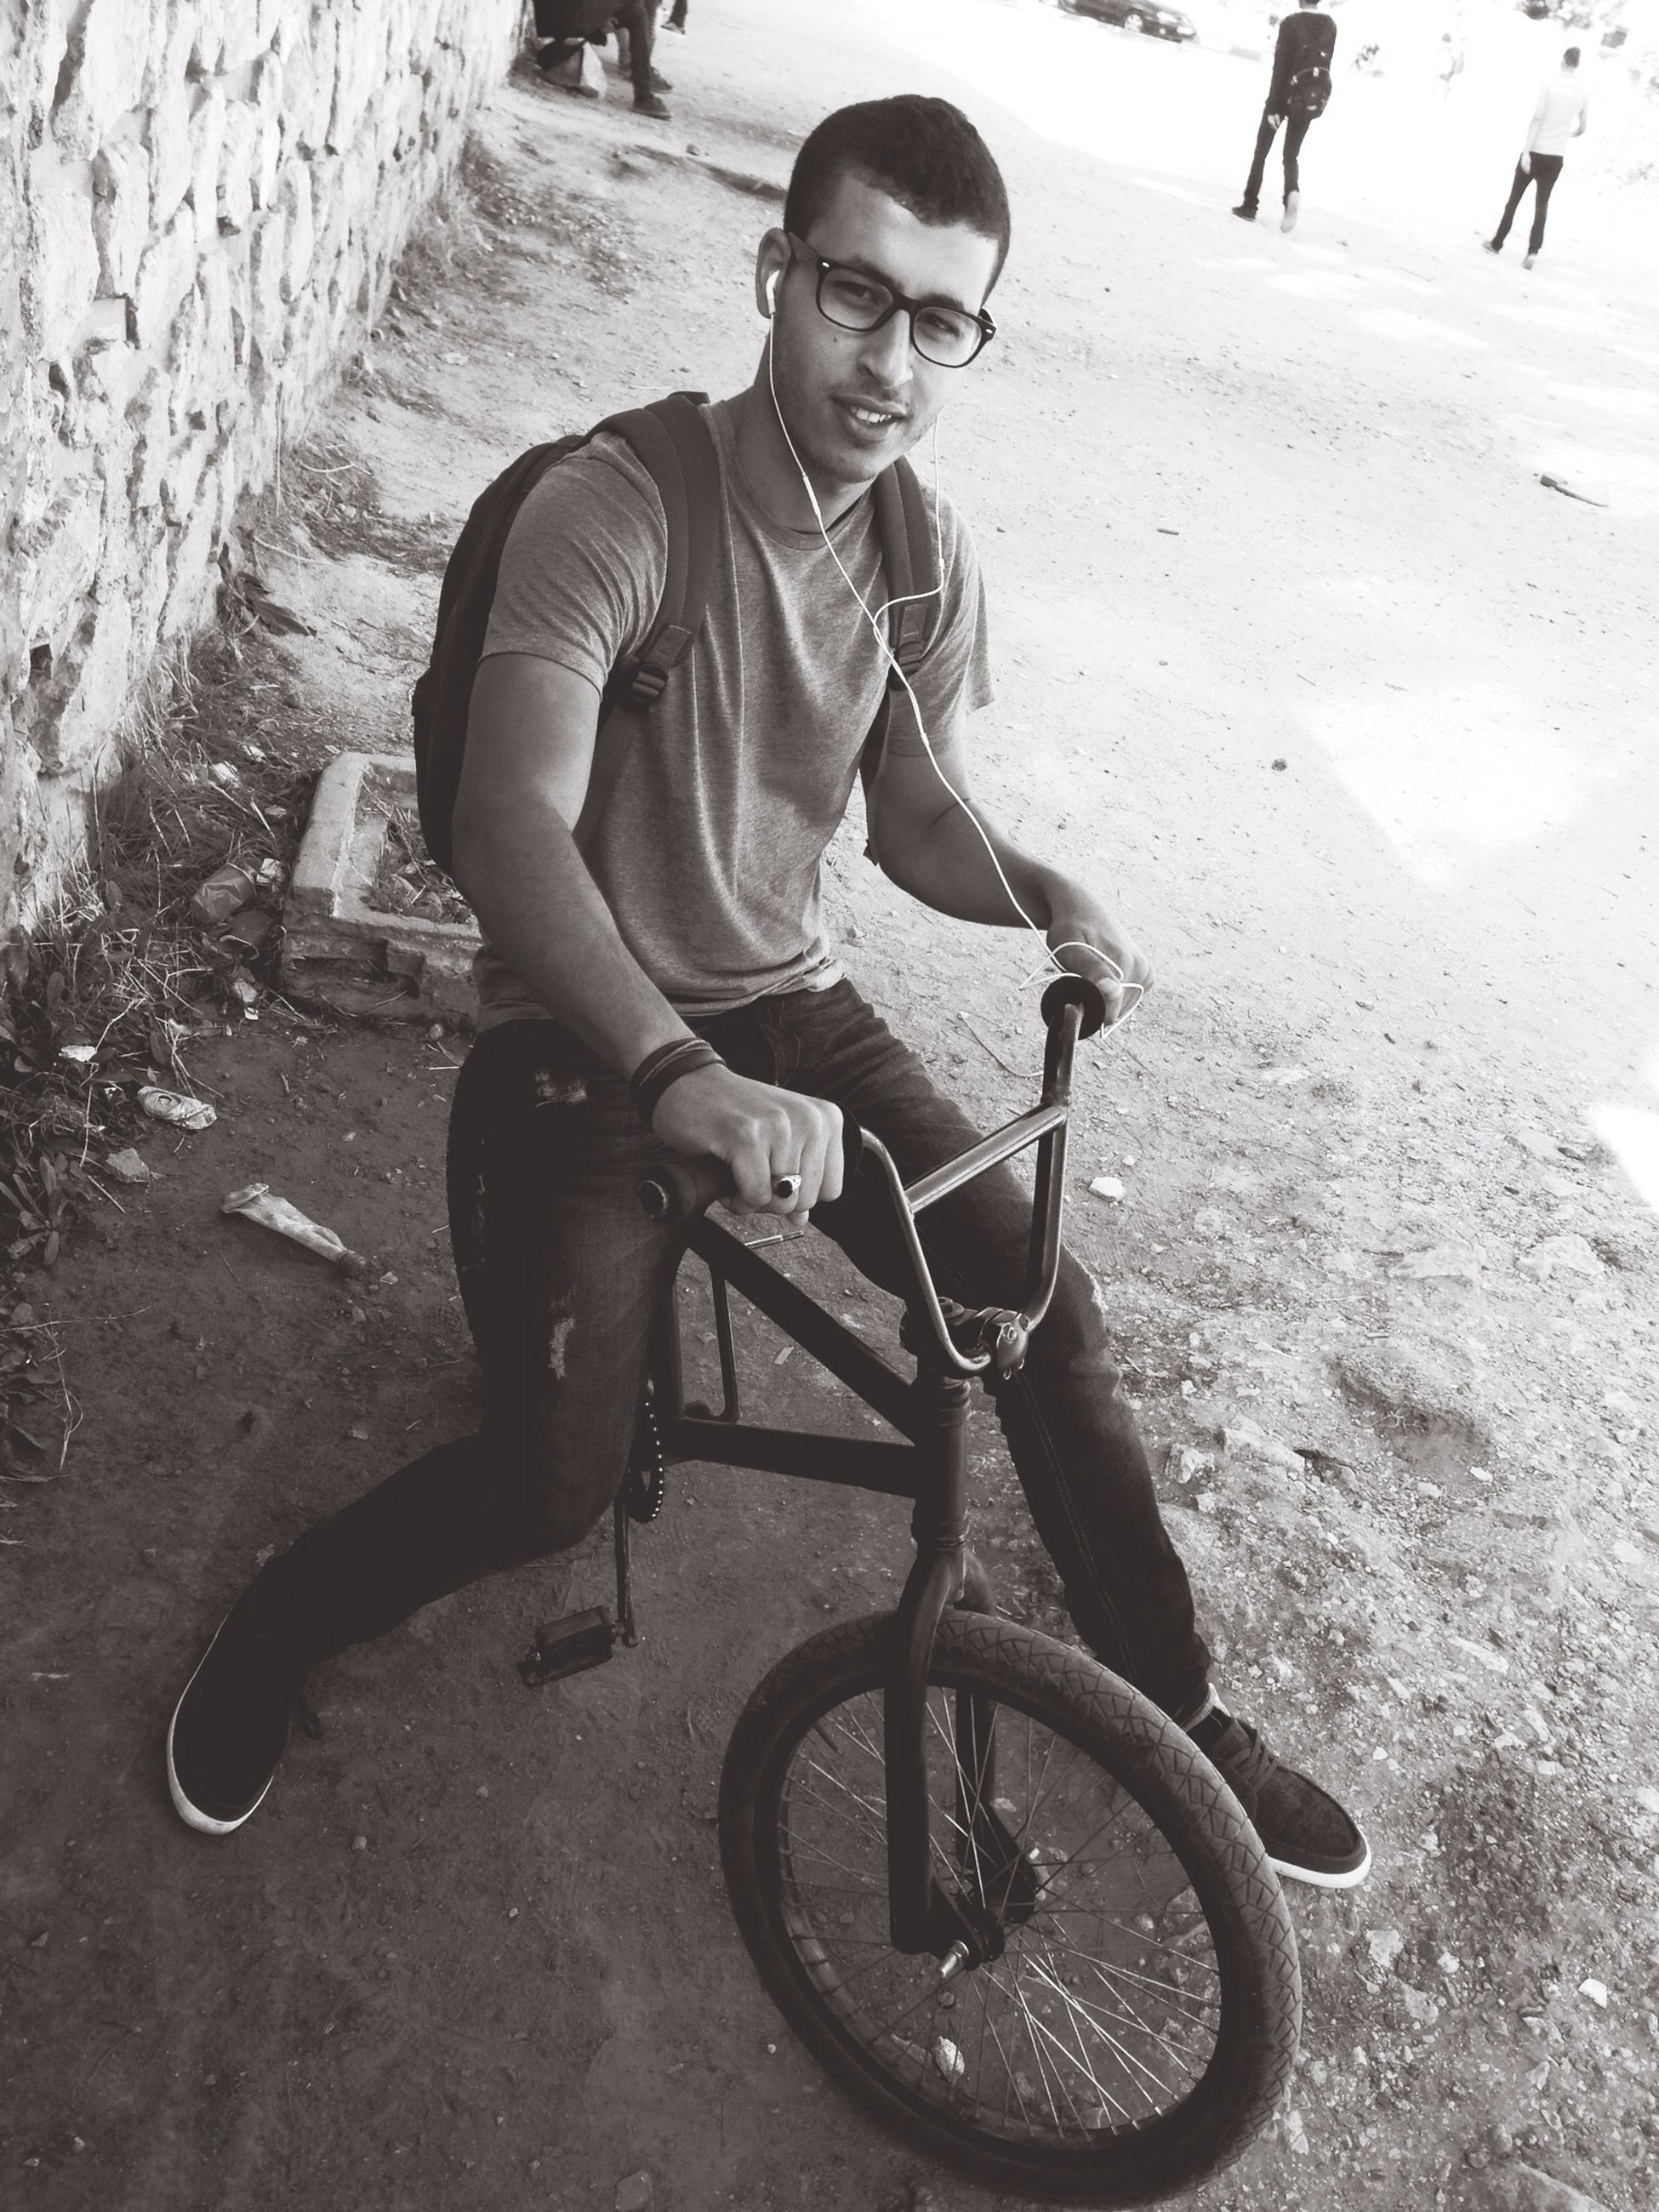 lifestyles, full length, casual clothing, leisure activity, person, street, land vehicle, bicycle, transportation, childhood, mode of transport, young adult, boys, sitting, front view, side view, road, shadow